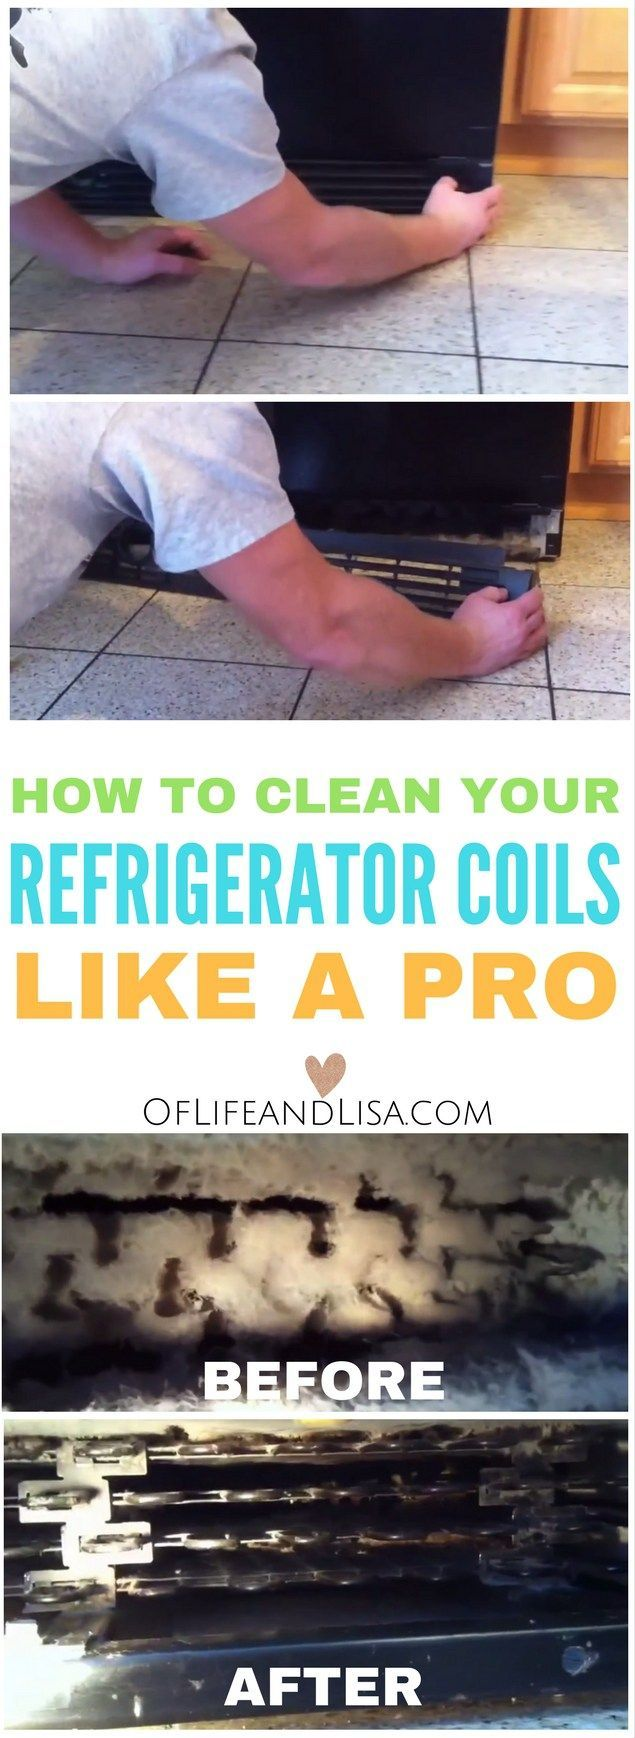 When was the last time that you actually cleaned your refrigerator coils?